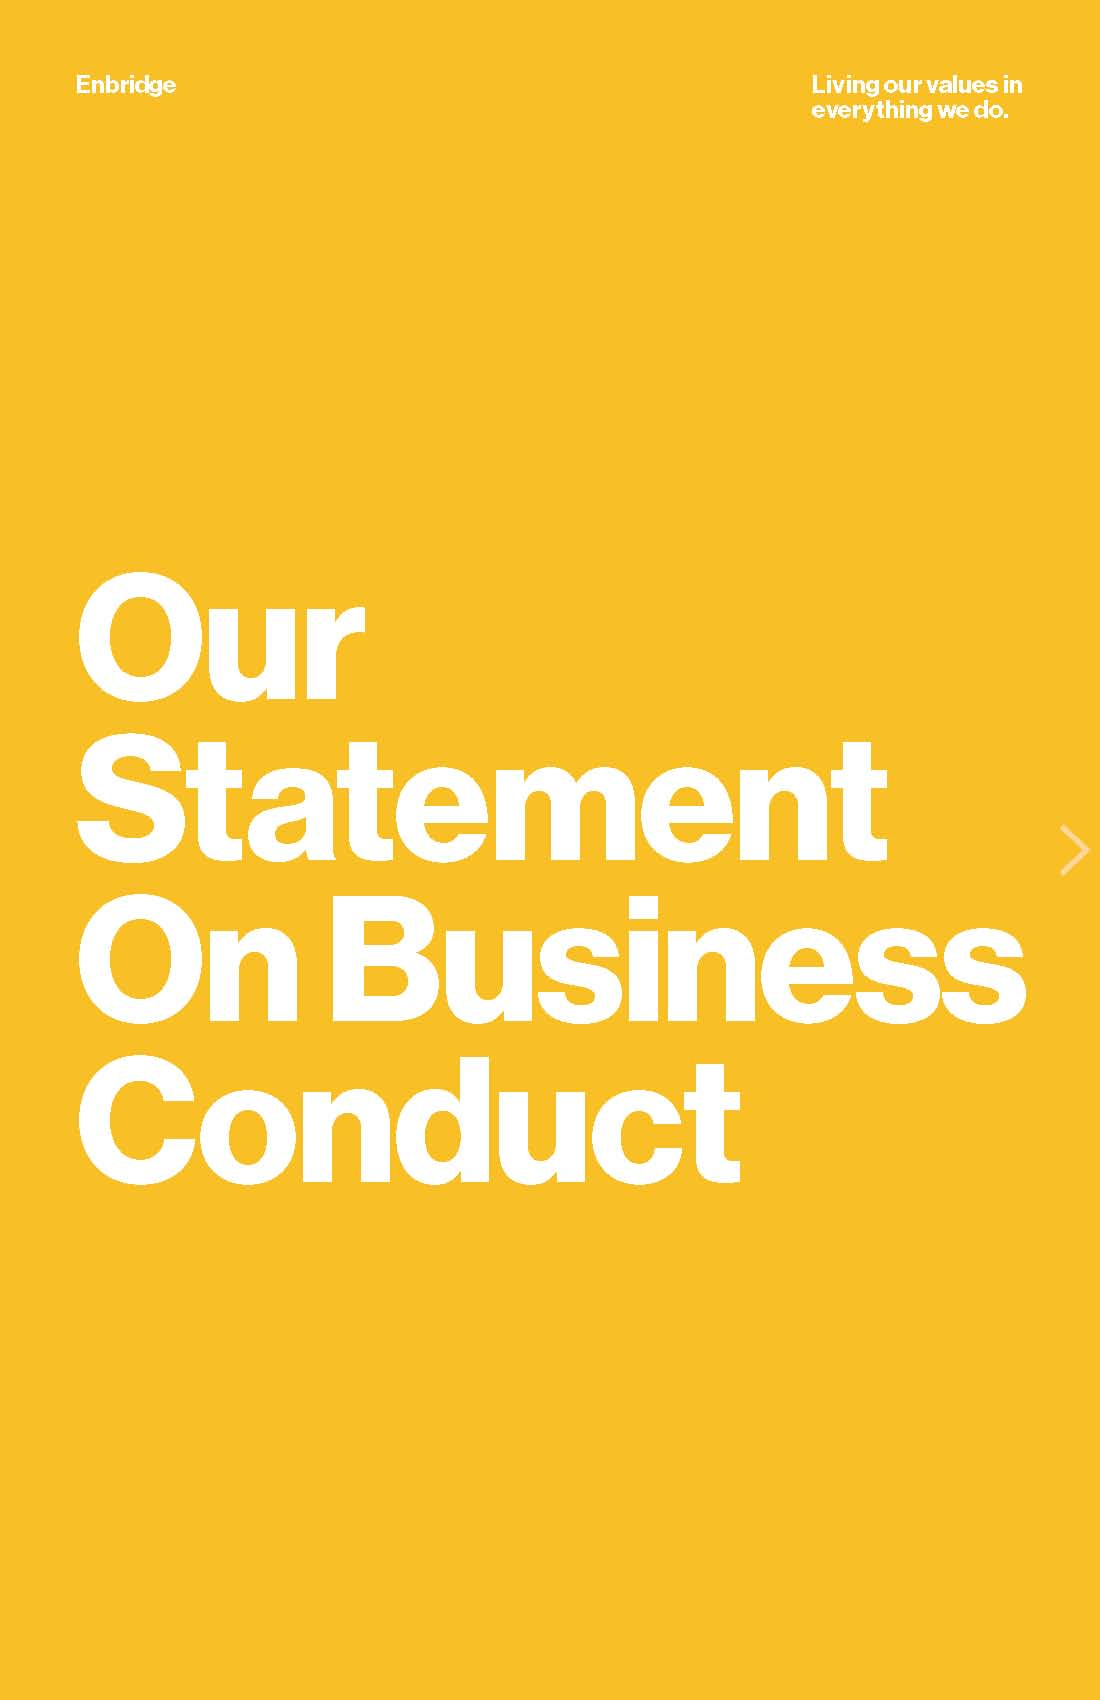 Statement on Business Conduct